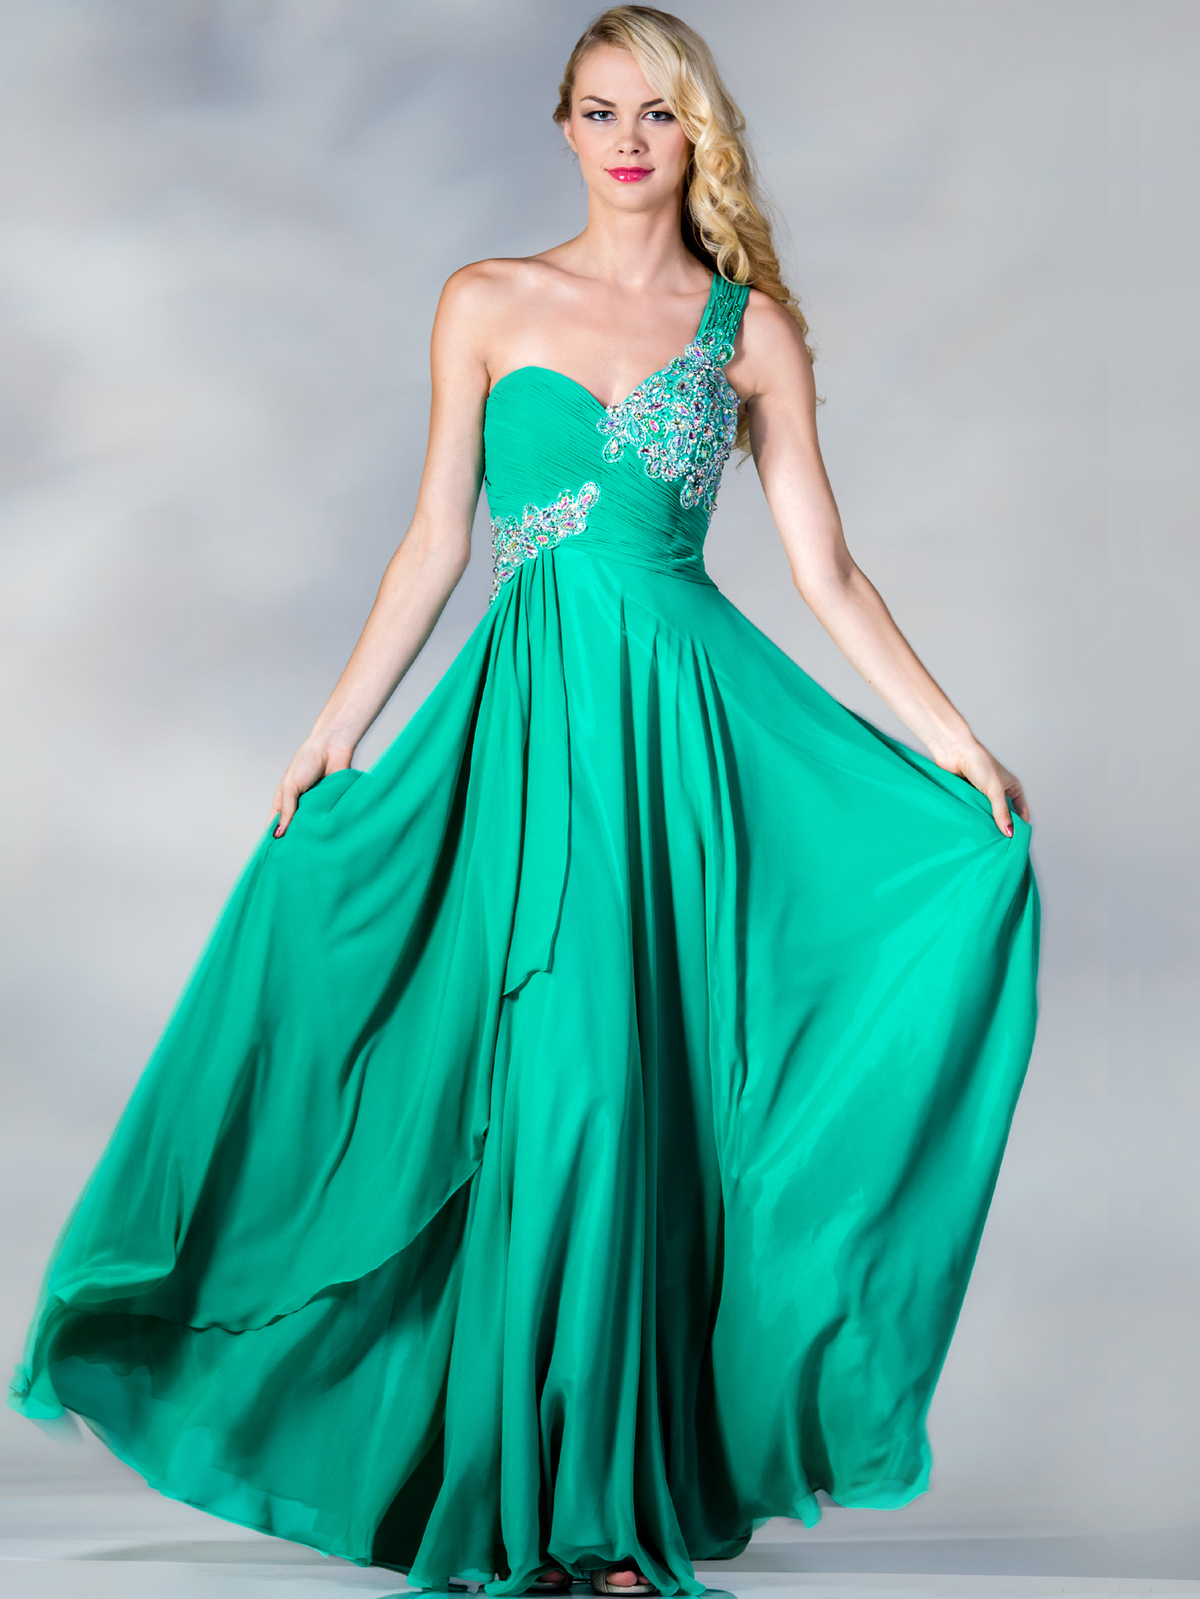 Prom dress stores in hickory nc ~ FASHION N\' BEAUTY